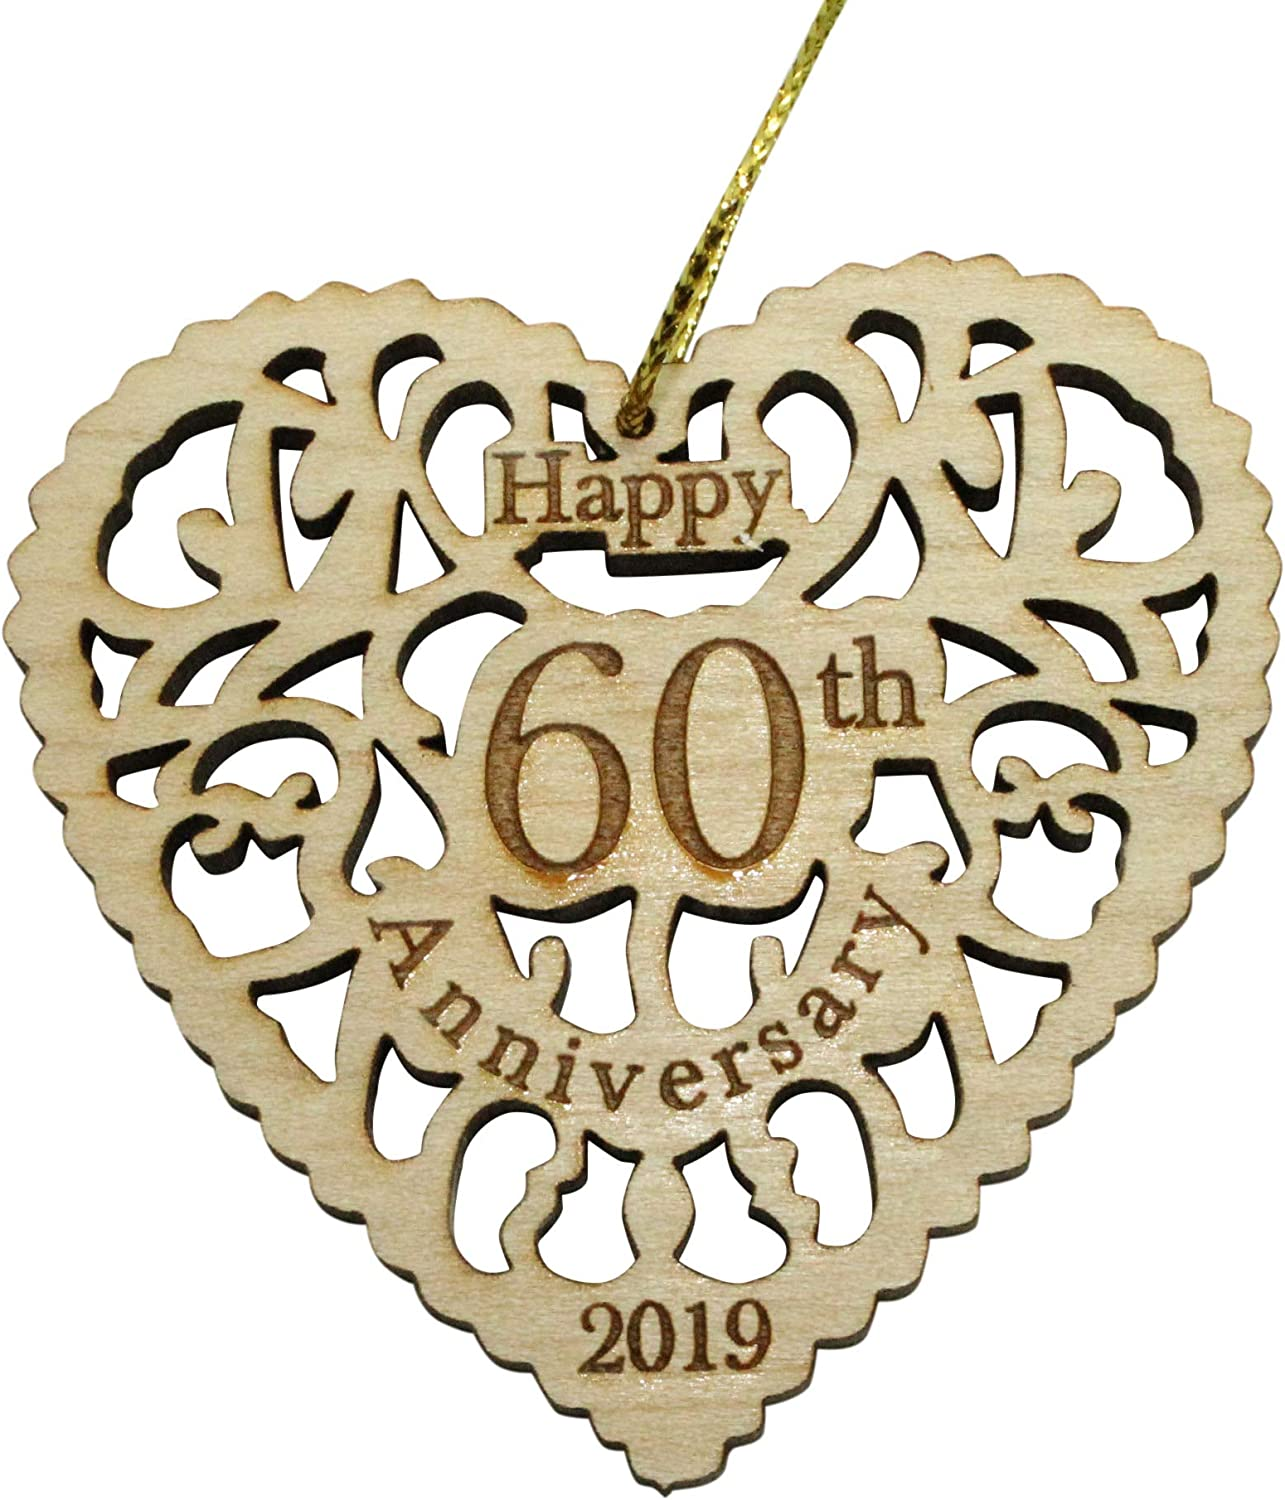 Comes In A Pretty Organza Gift Bag So It S Ready To Give Heart Shaped Happy Anniversary Ornament 60th Beautiful Laser Cut Wood Detail Twisted Anchor Trading Co 60th Anniversary Ornament 2019